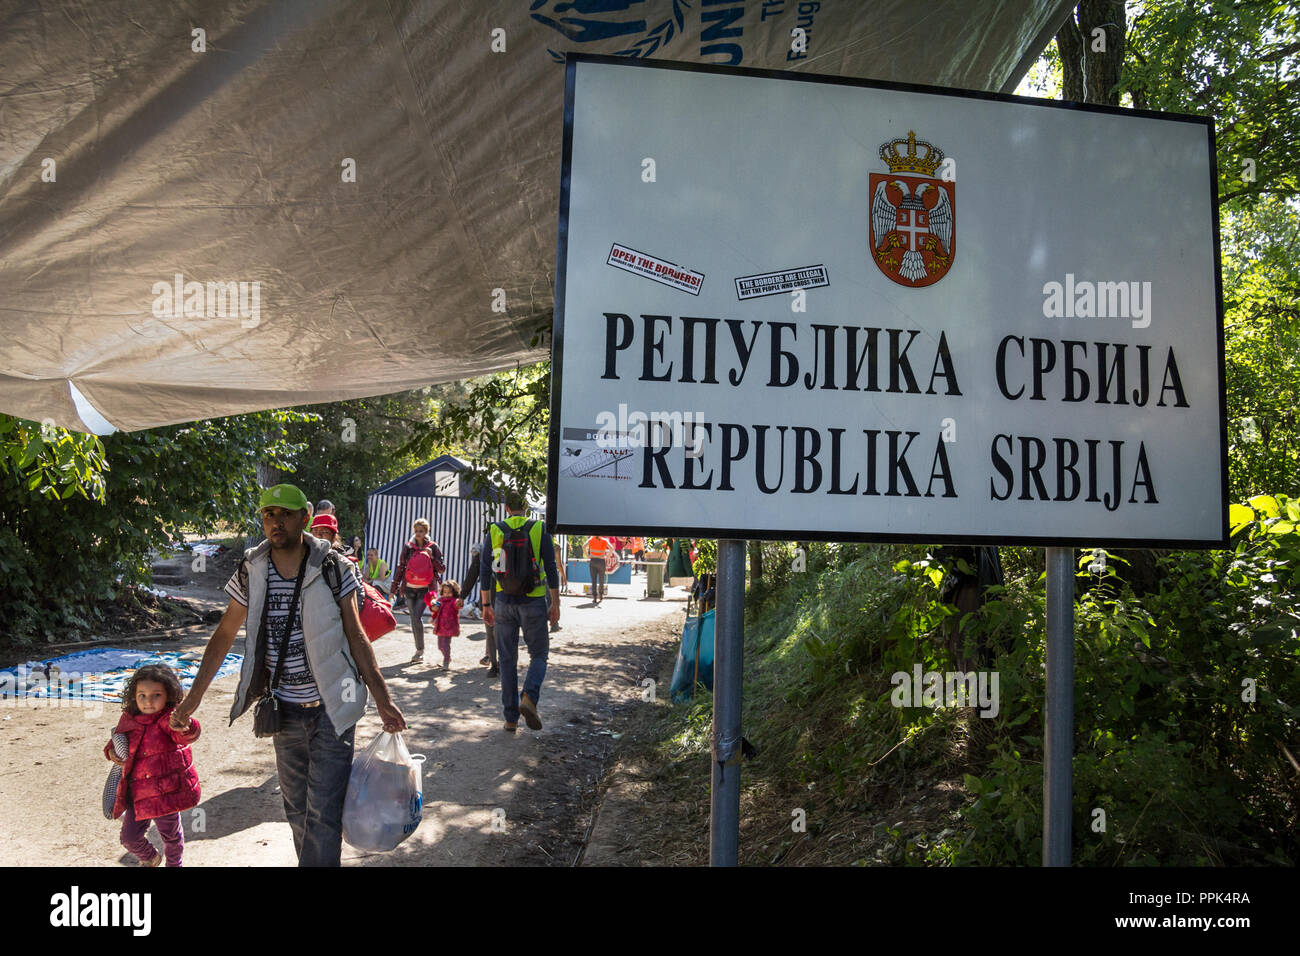 BERKASOVO, SERBIA - OCTOBER 3, 2015: Refugees walking next to the border sign on Serbia Croatia boundary in Berkasovo Bapska, on the Balkans Route, du - Stock Image